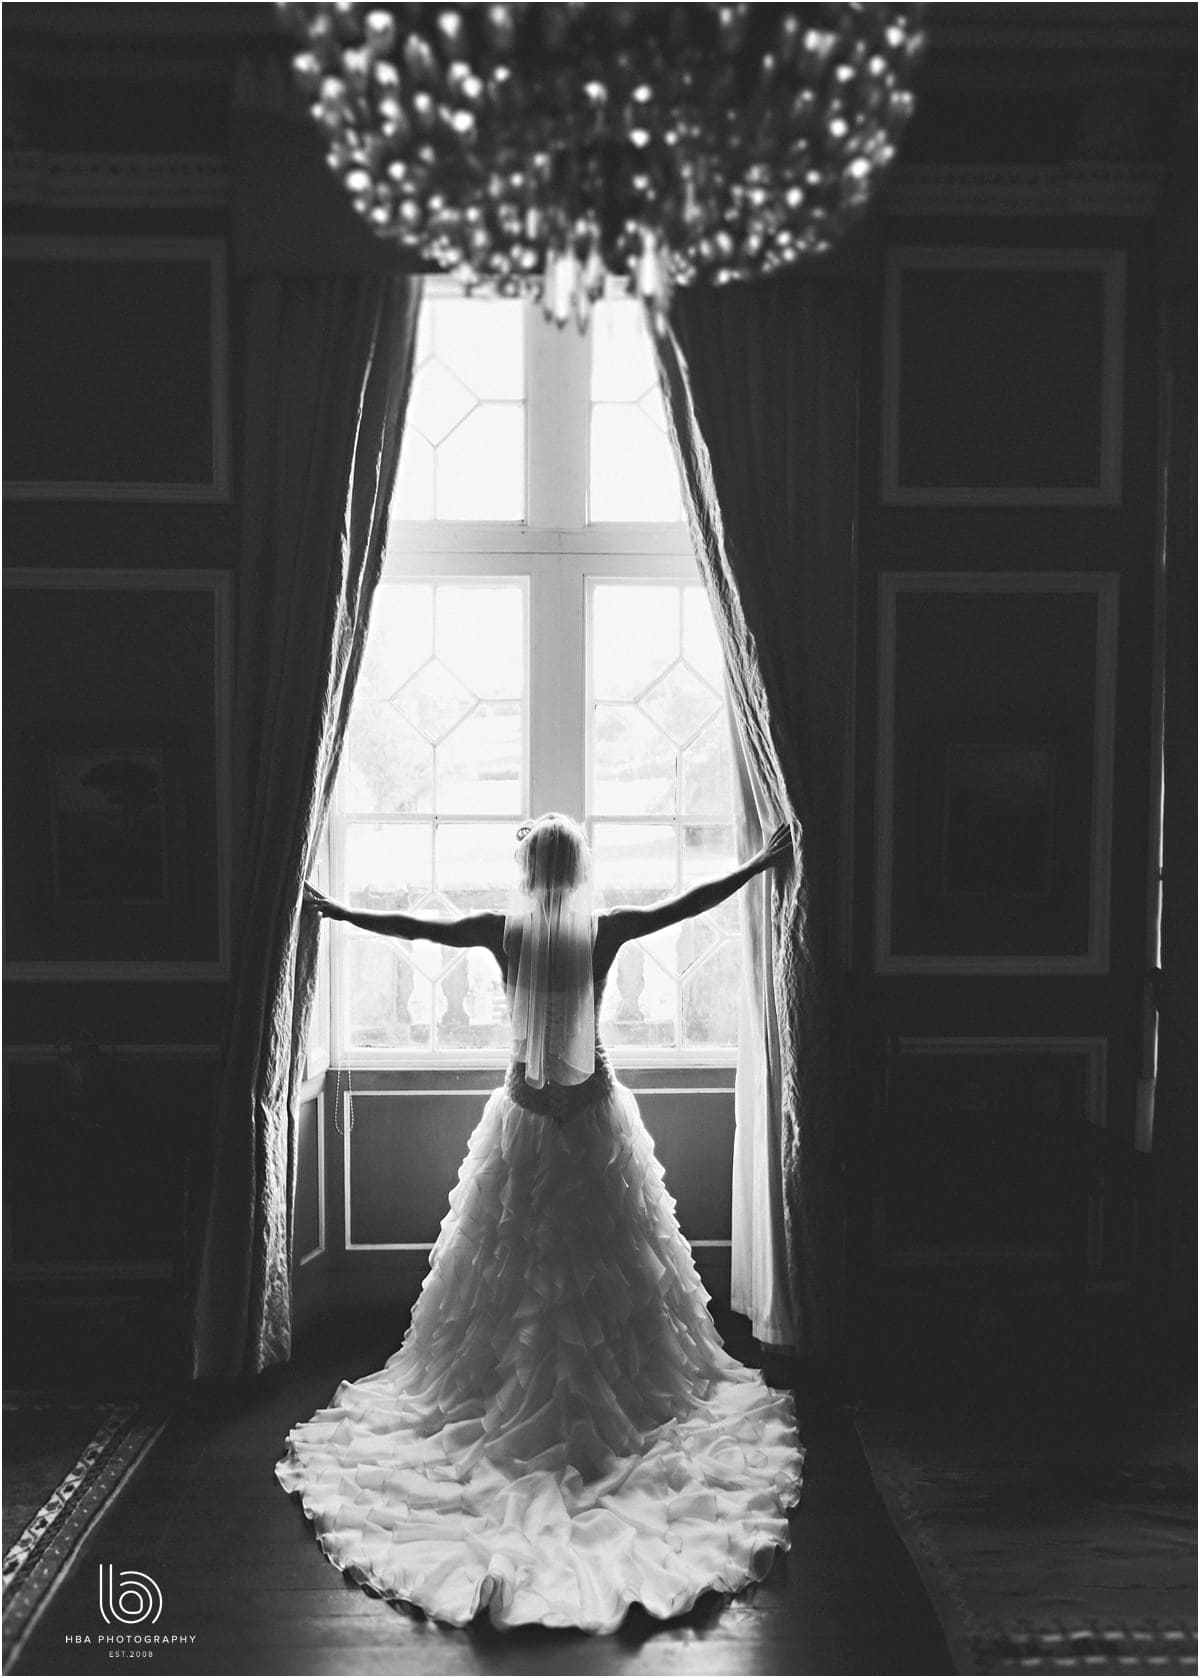 the bride in one of the windows at Thrumpton Hall